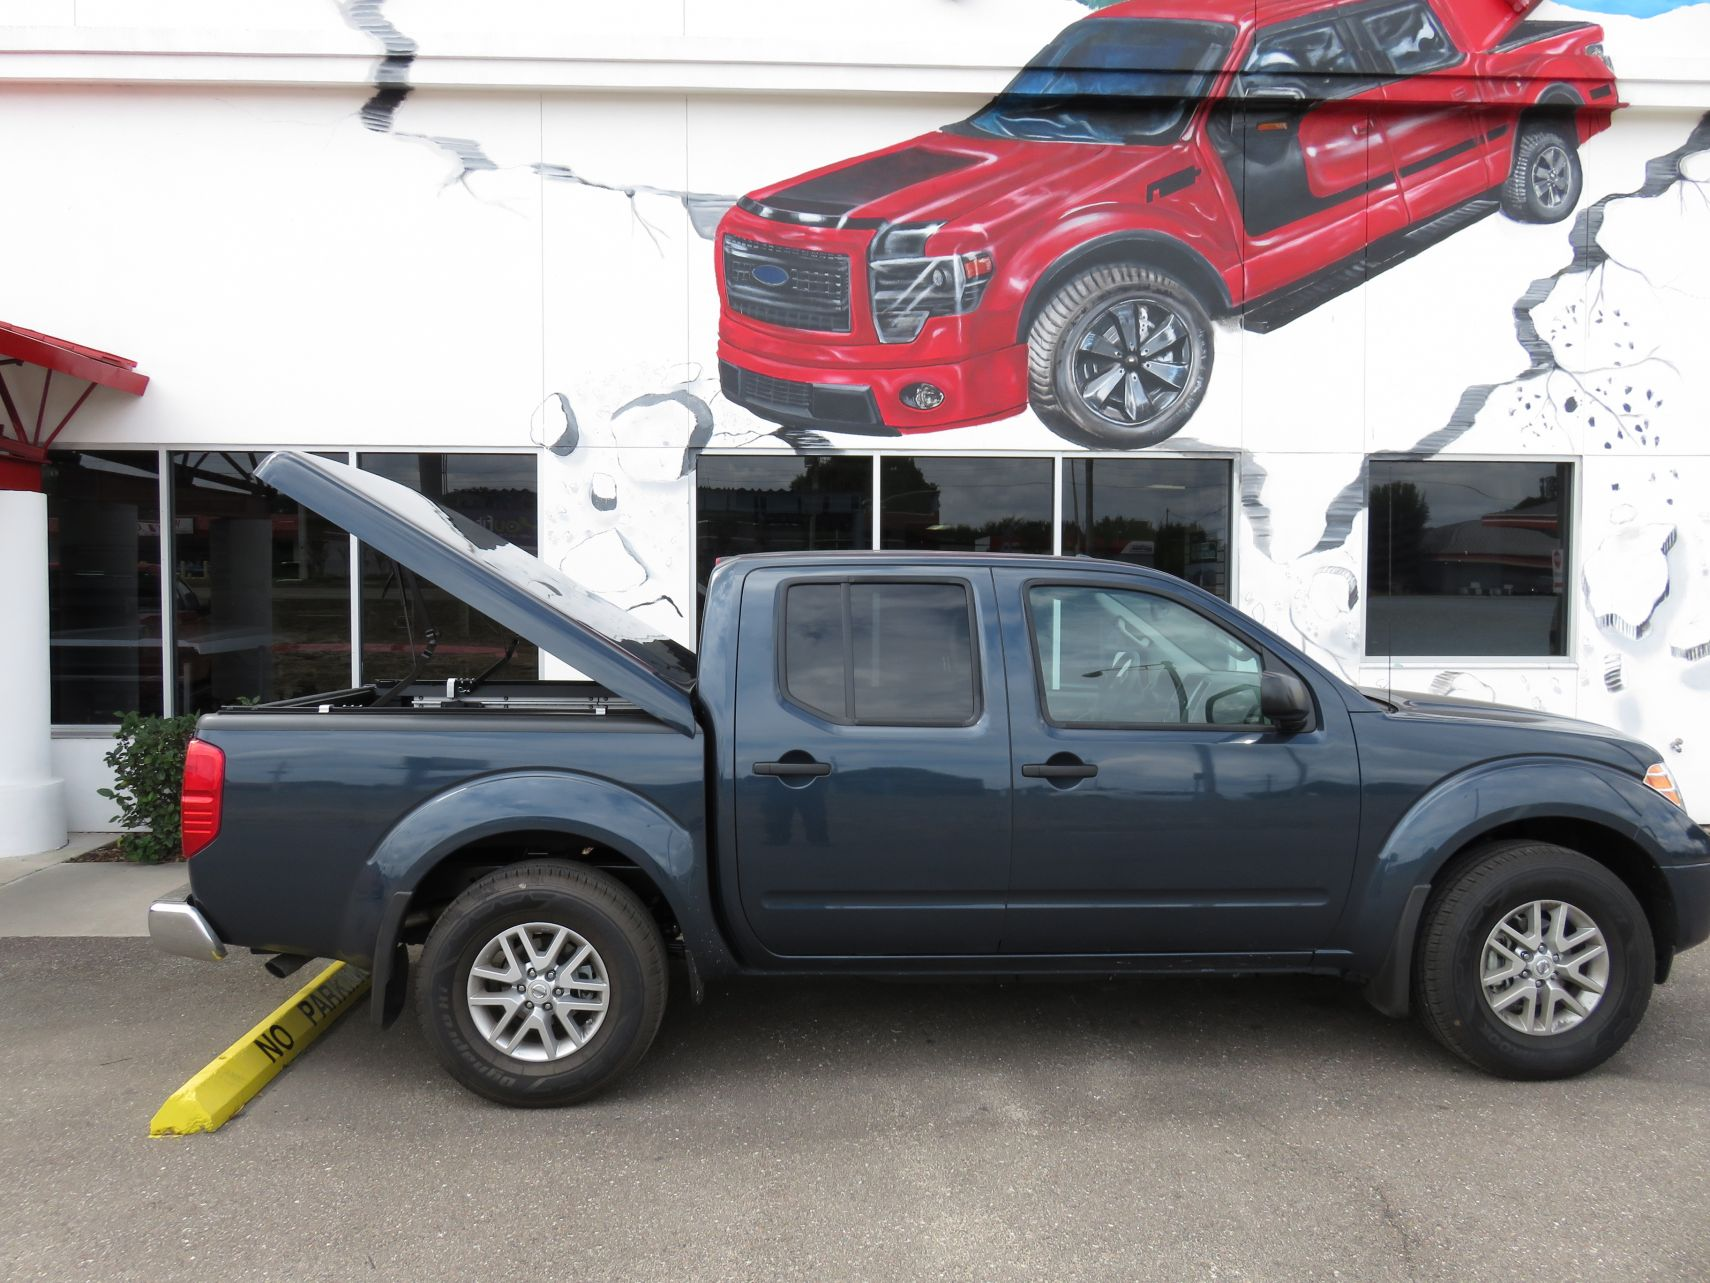 2015 Nissan Frontier with a brand new Ranch SportWrap fiberglass lid and a custom hitch by TopperKING in Brandon, FL 813-689-2449 Call today to start on your truck!